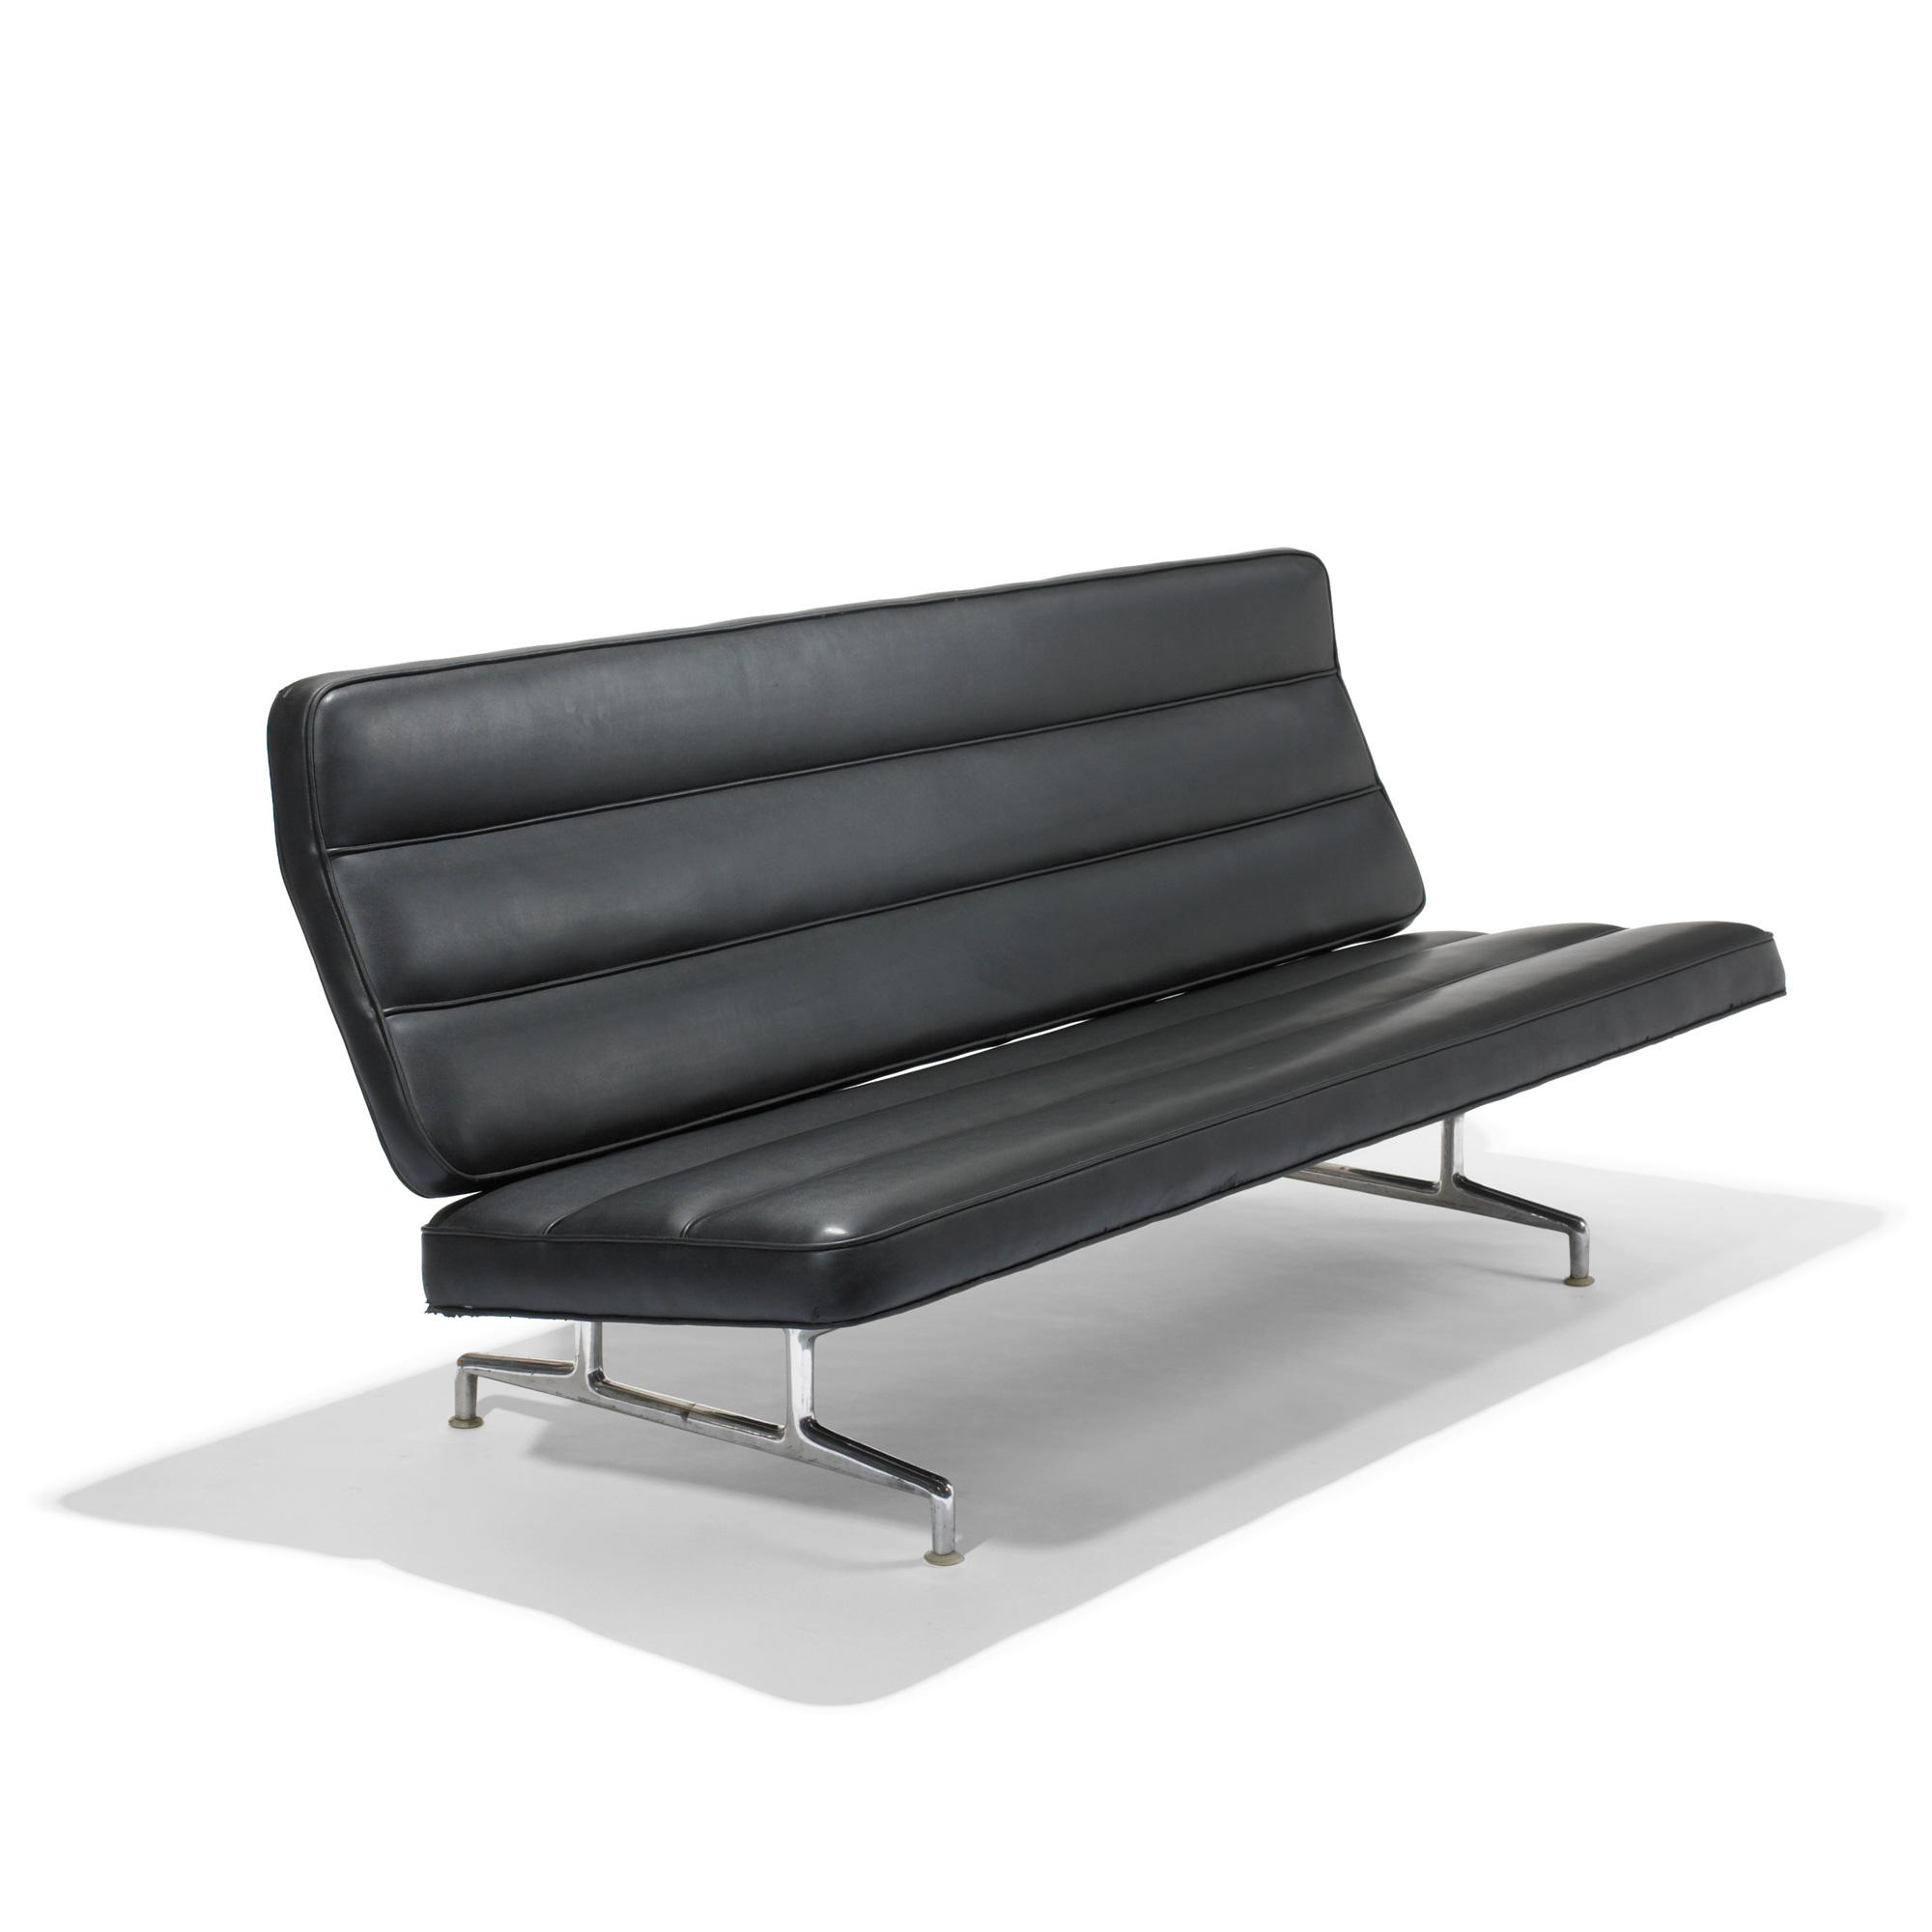 charles and ray eames 3743 sofa. Black Bedroom Furniture Sets. Home Design Ideas